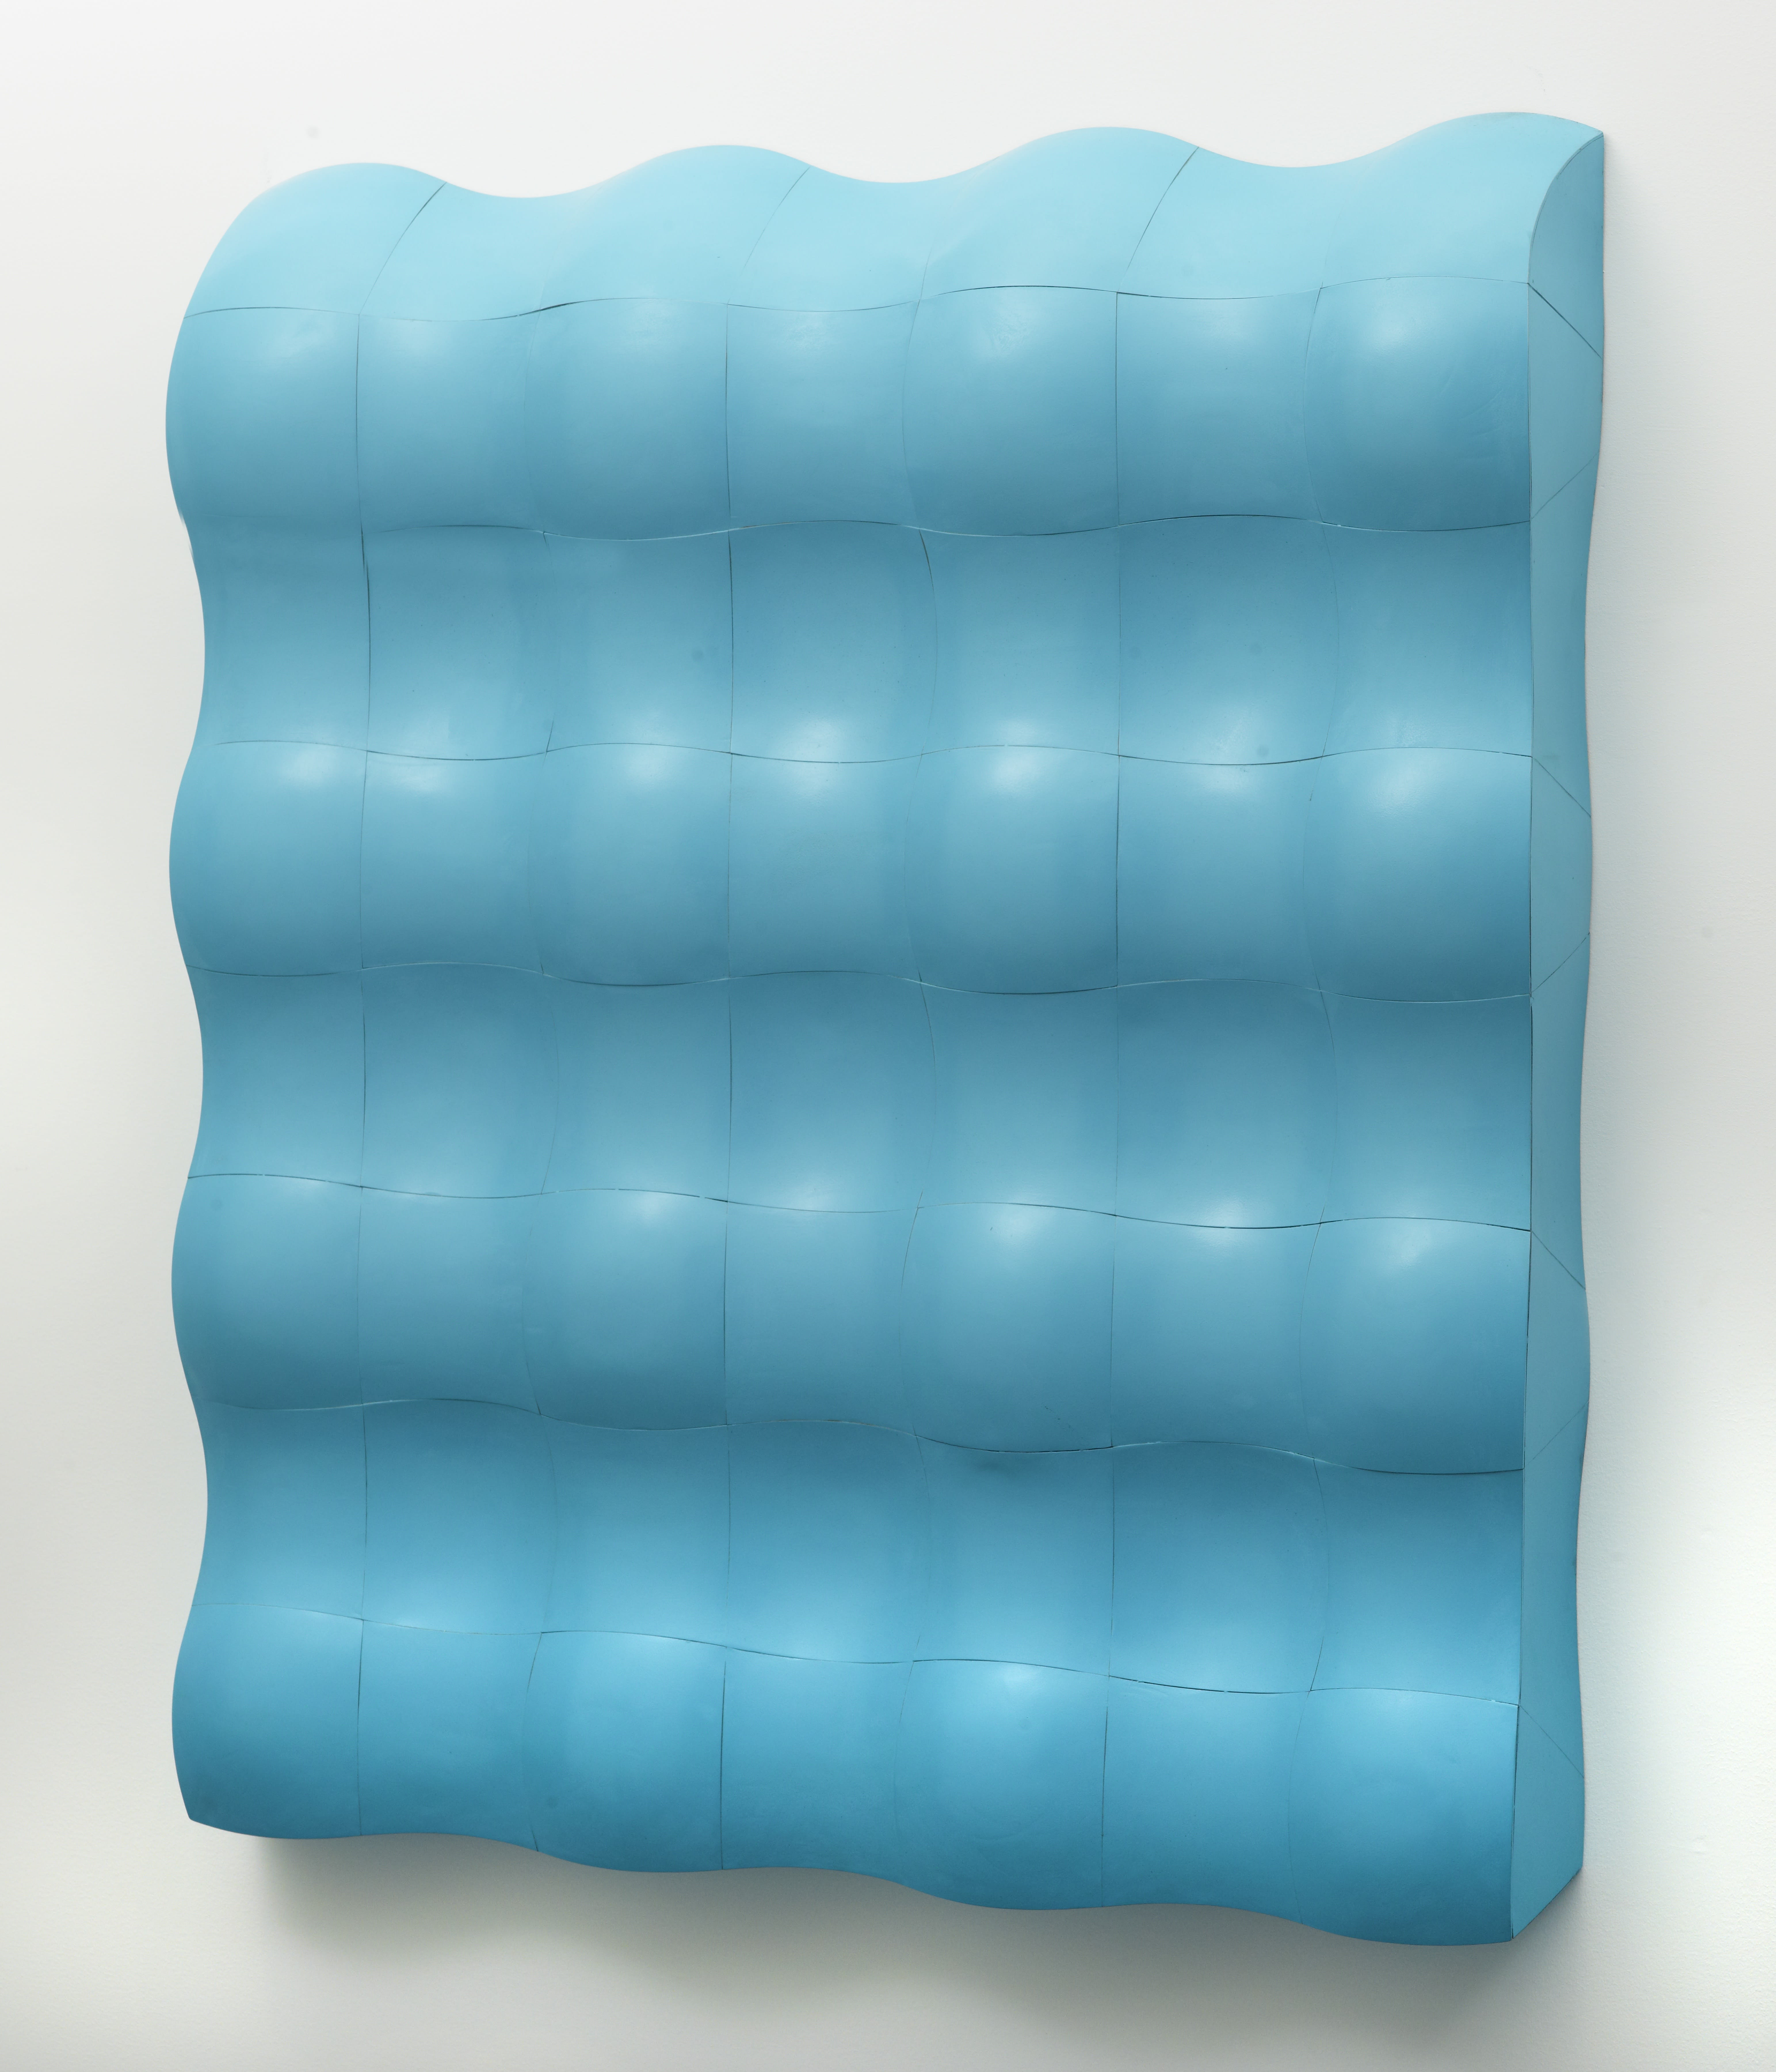 Hoss Haley, Large Tessellation (Cyan), steel, automotive paint, 48 x 43-1/2 x 5-1/2 inches